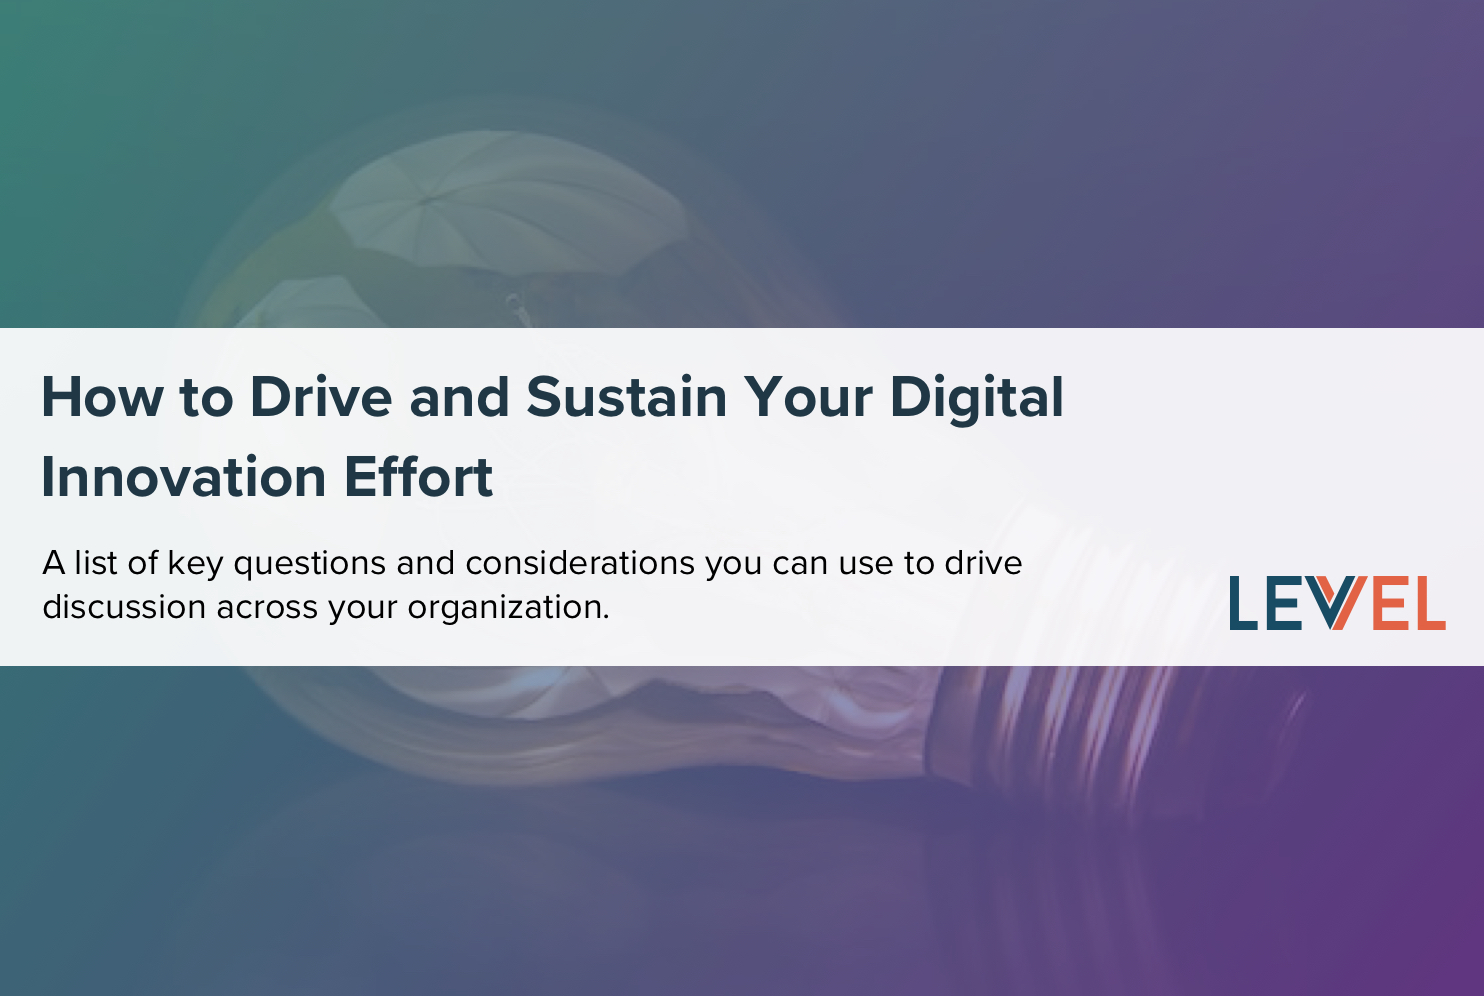 How to Drive and Sustain Your Digital Innovation Effort